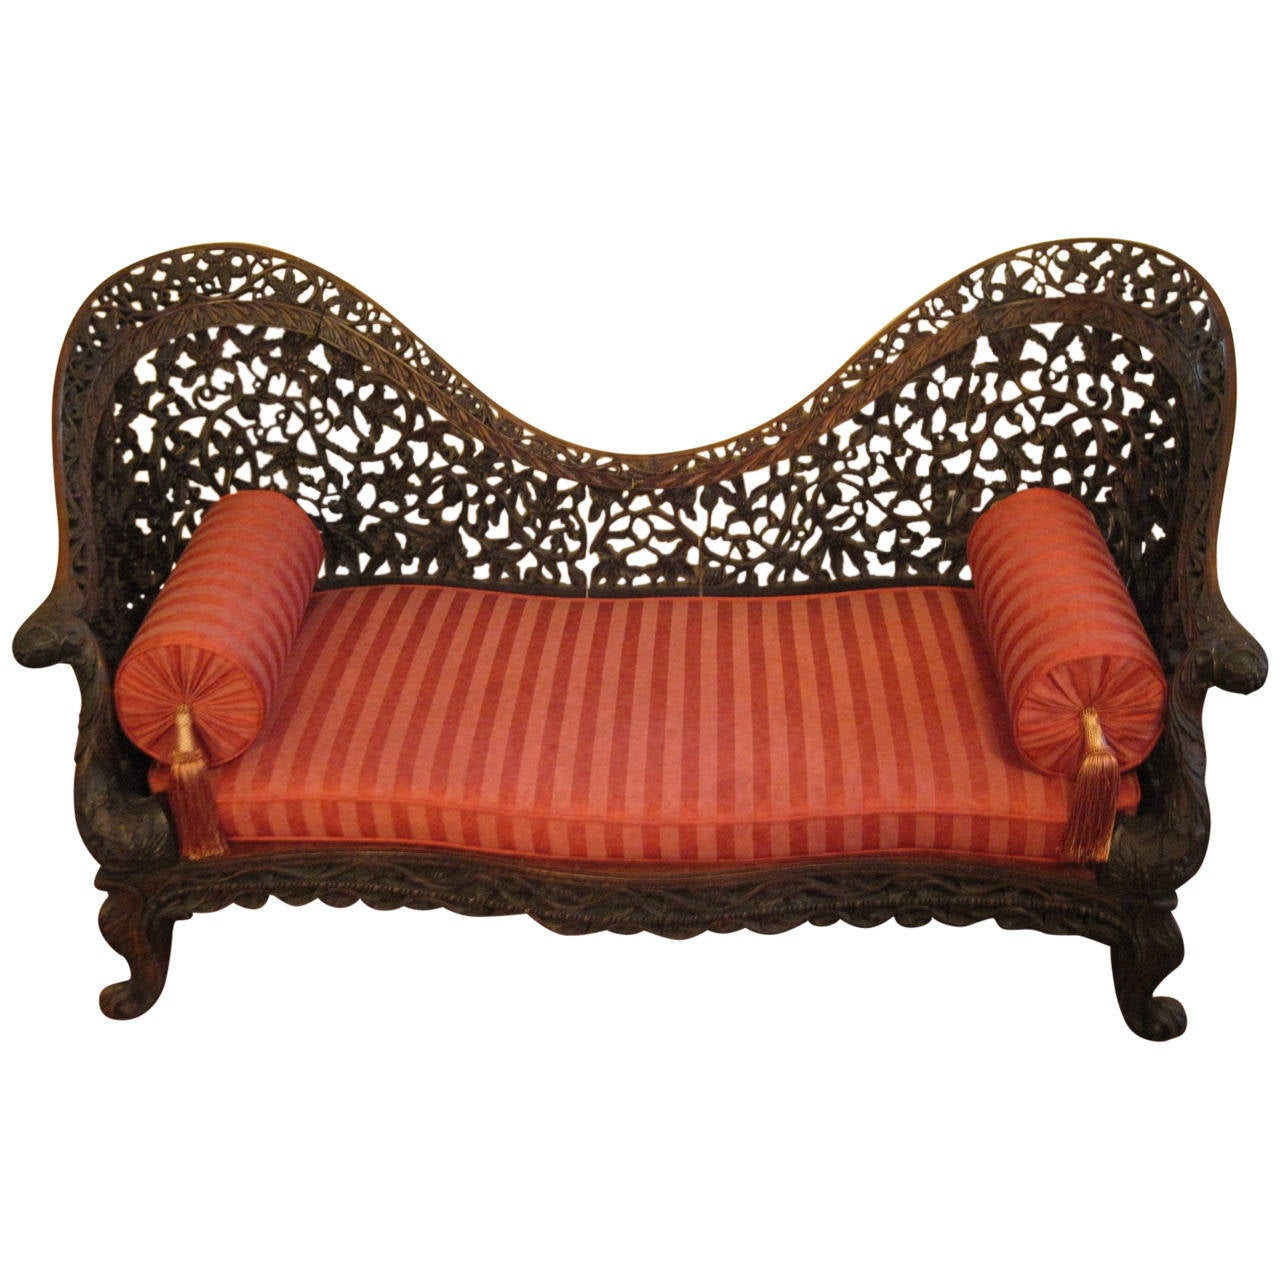 Anglo Indian Settee Late 18th Or Early 19th Century Carved Rosewood For Sale At 1stdibs